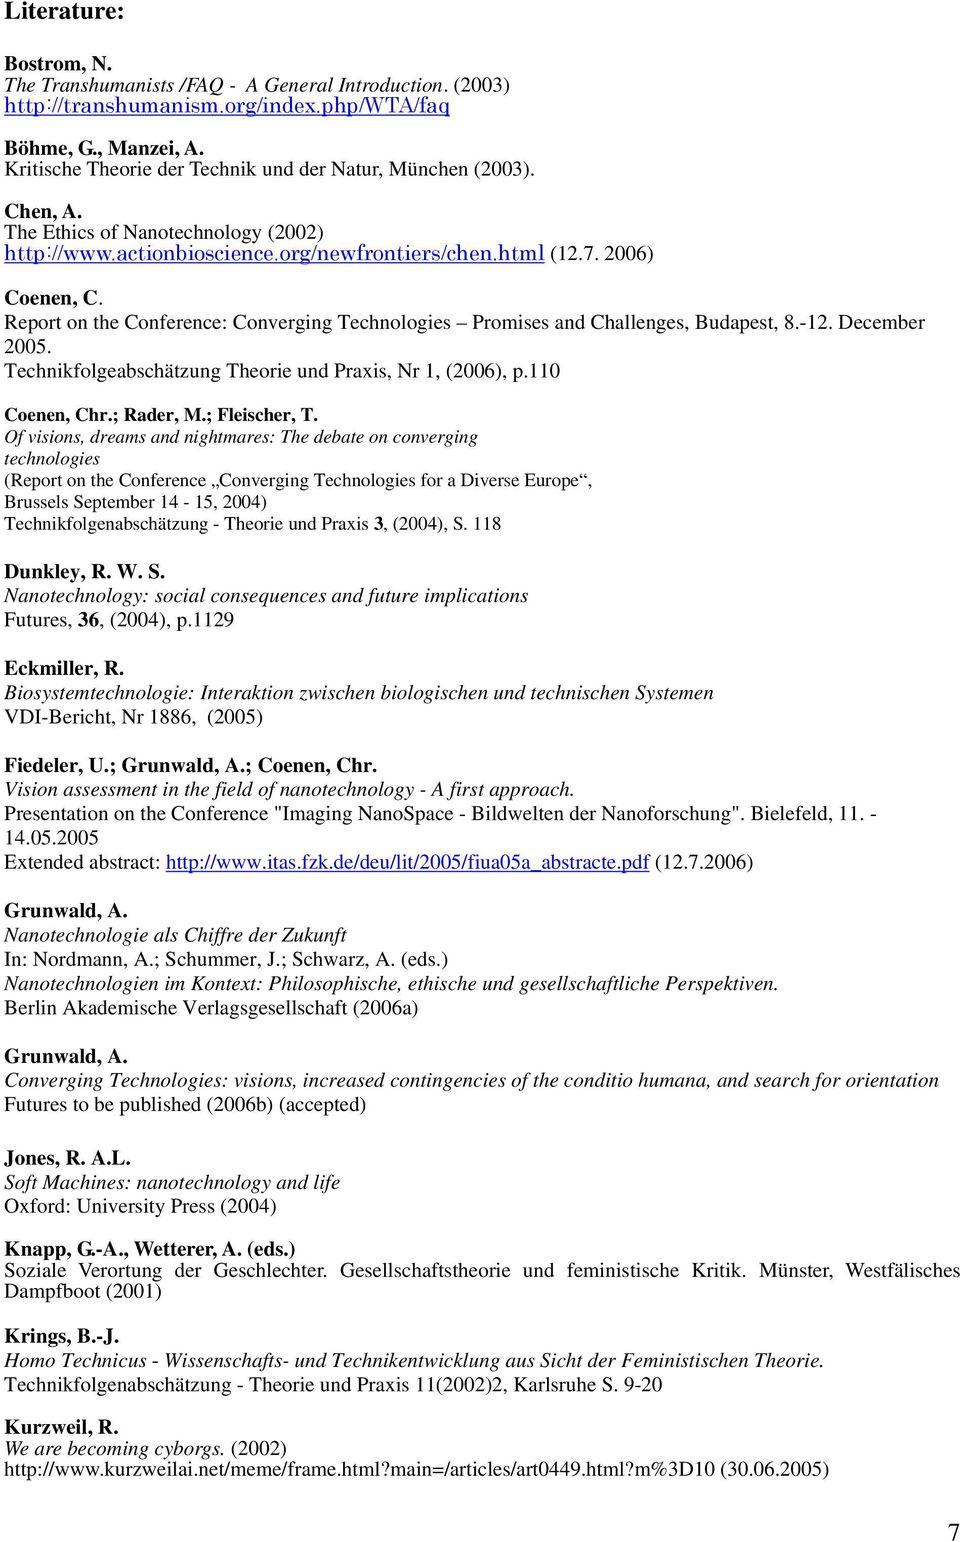 Report on the Conference: Converging Technologies Promises and Challenges, Budapest, 8.-12. December 2005. Technikfolgeabschätzung Theorie und Praxis, Nr 1, (2006), p.110 Coenen, Chr.; Rader, M.